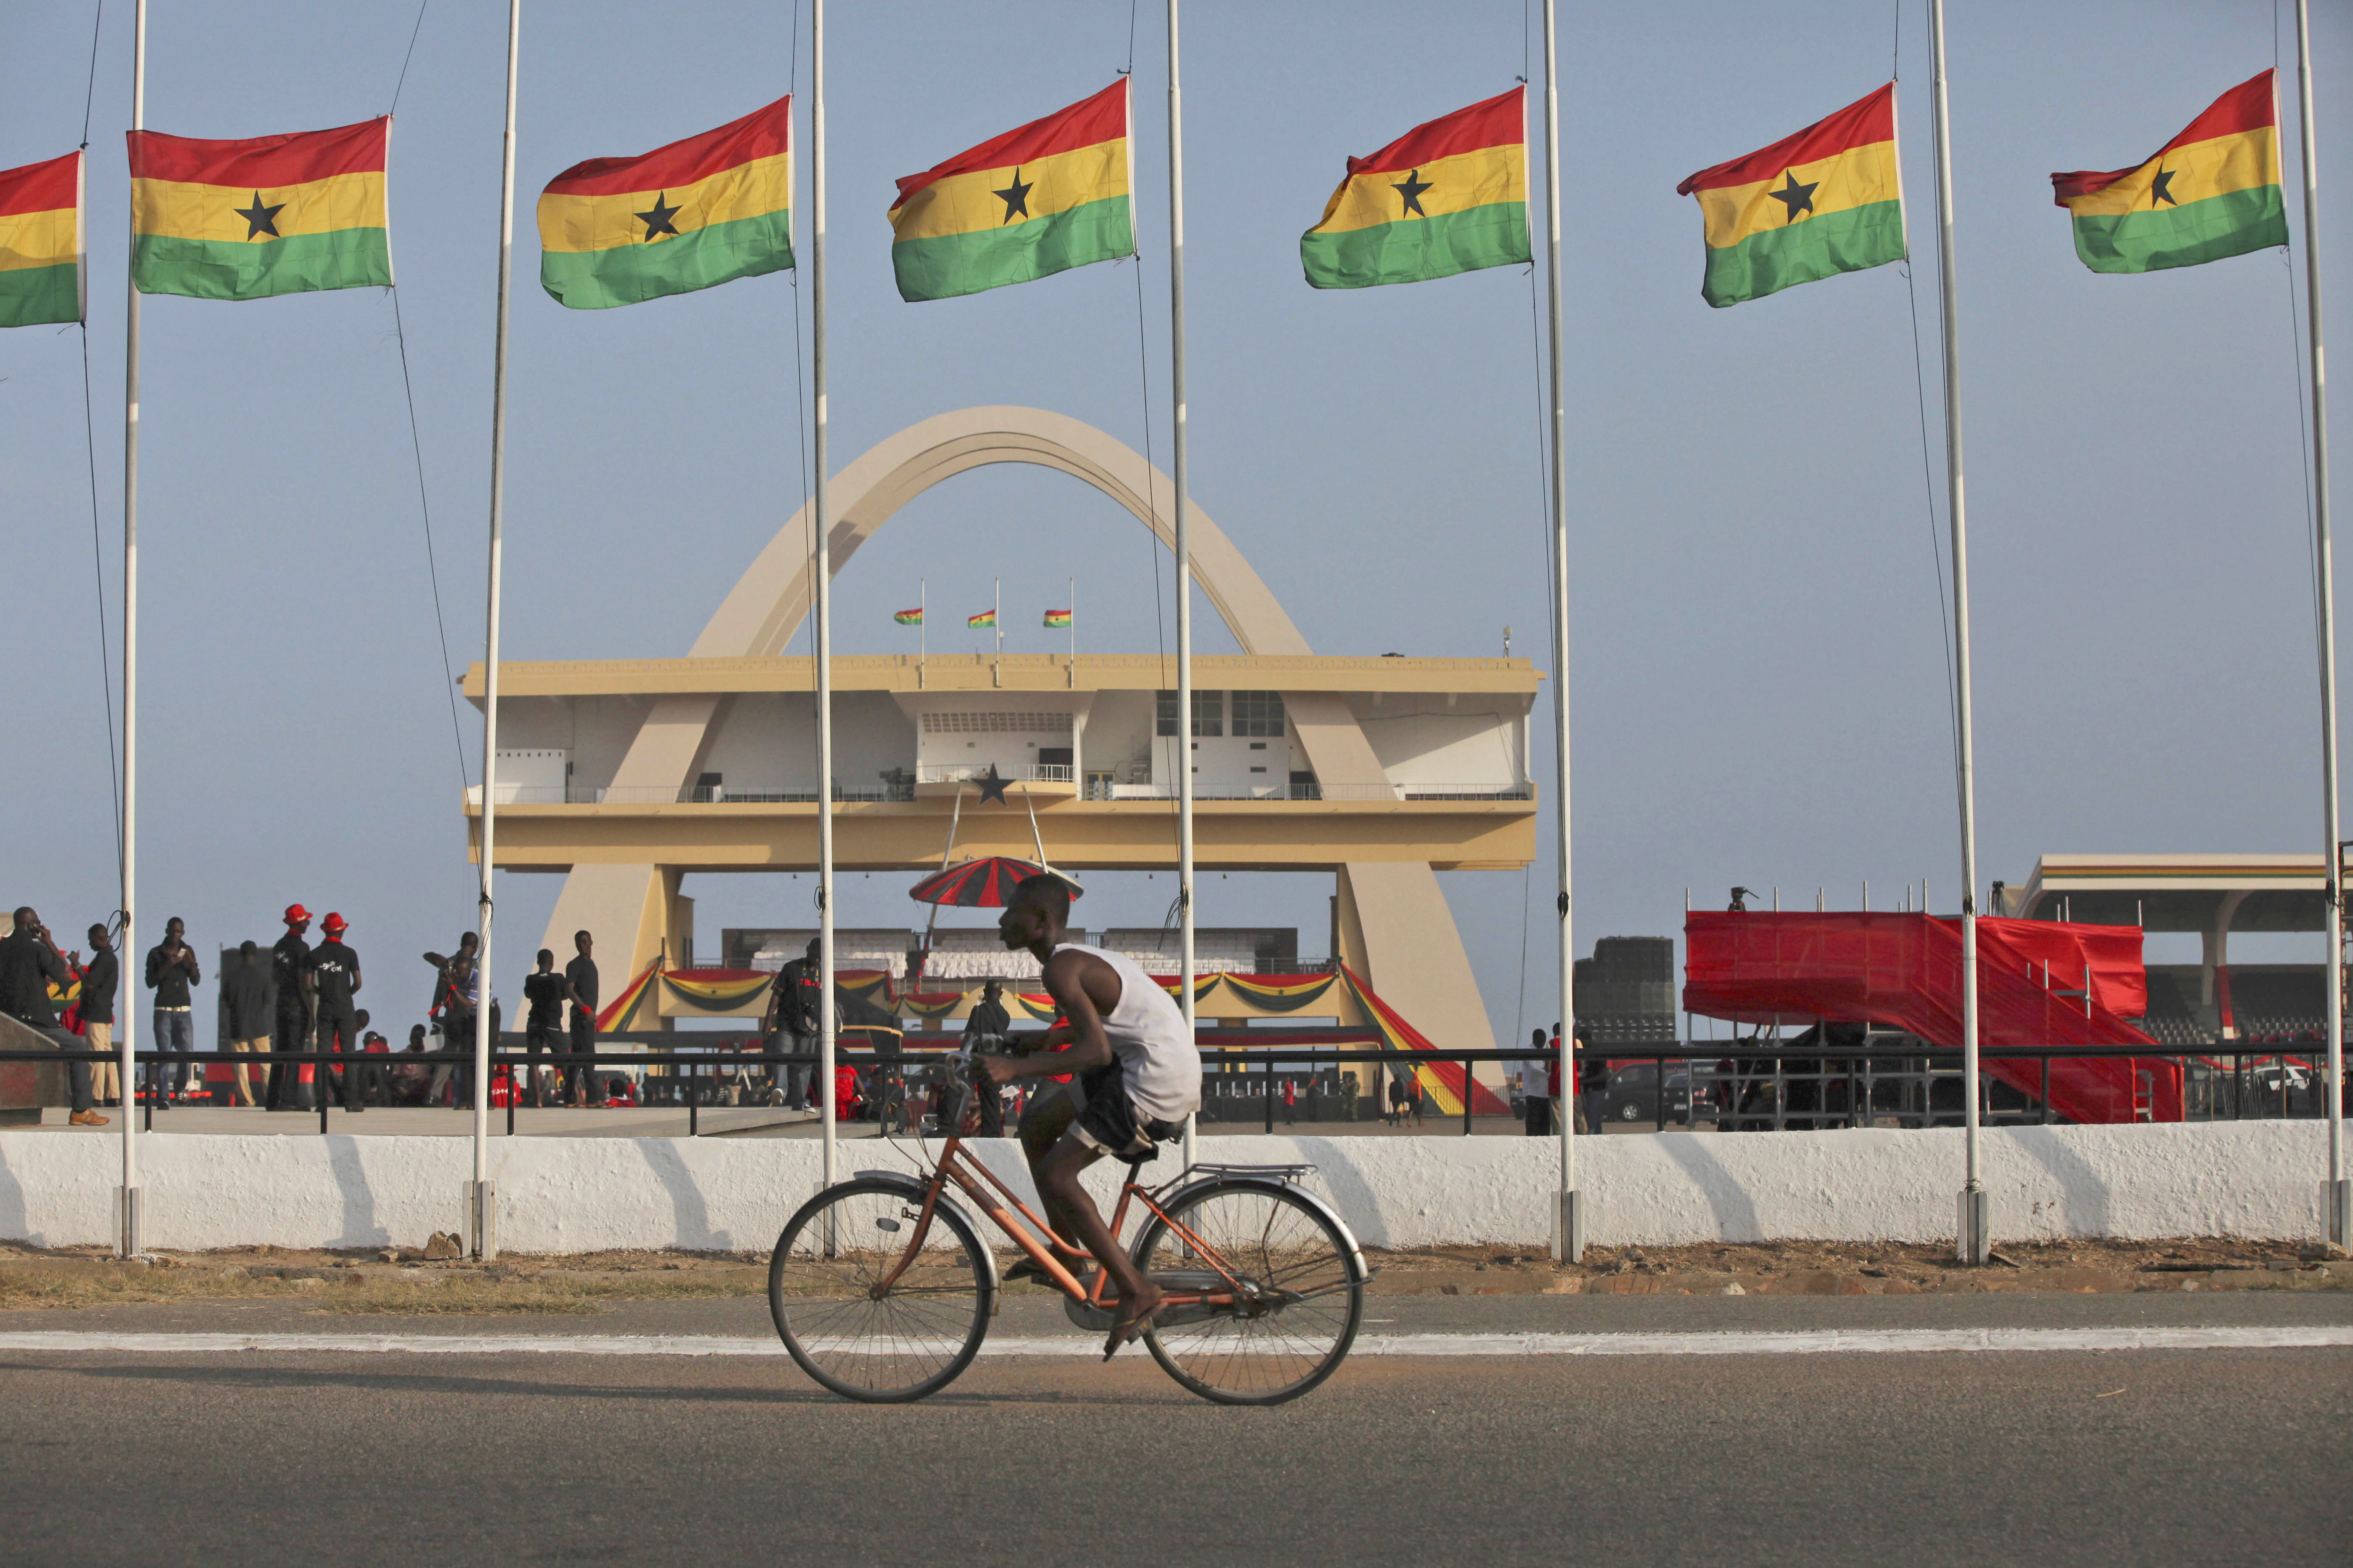 A man rides a bicycle past Ghanian flags flown at half mast to honor late Ghanian President, John Evans Atta Mills at the independence square in Accra, Ghana, Thursday, Aug.9, 2012.